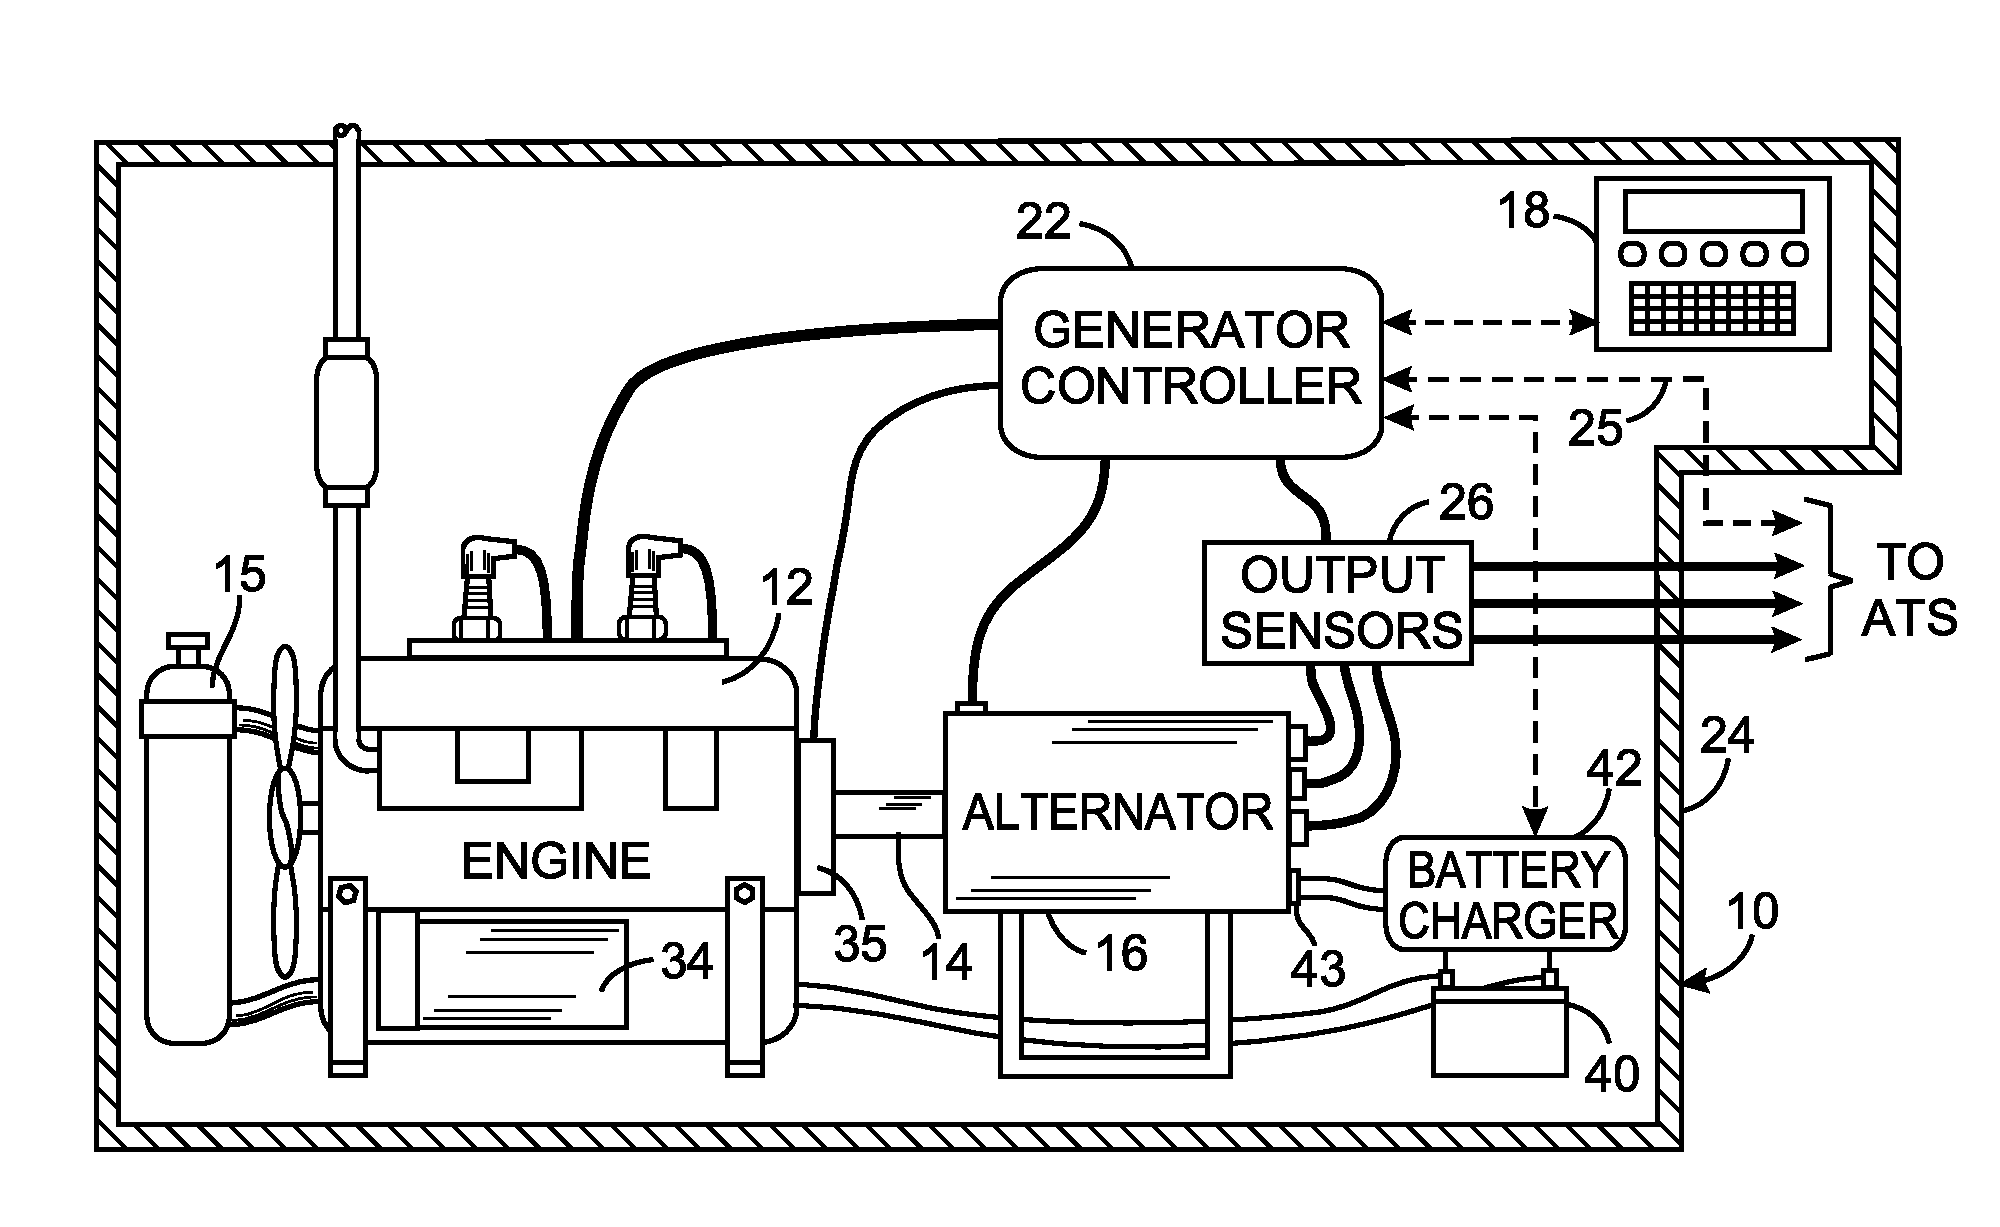 Wiring Diagram Kohler Gen Sets Page 2 And Schematics Generator Free Generac Diagrams Engine Image For User Manual Automatic Transfer Switch